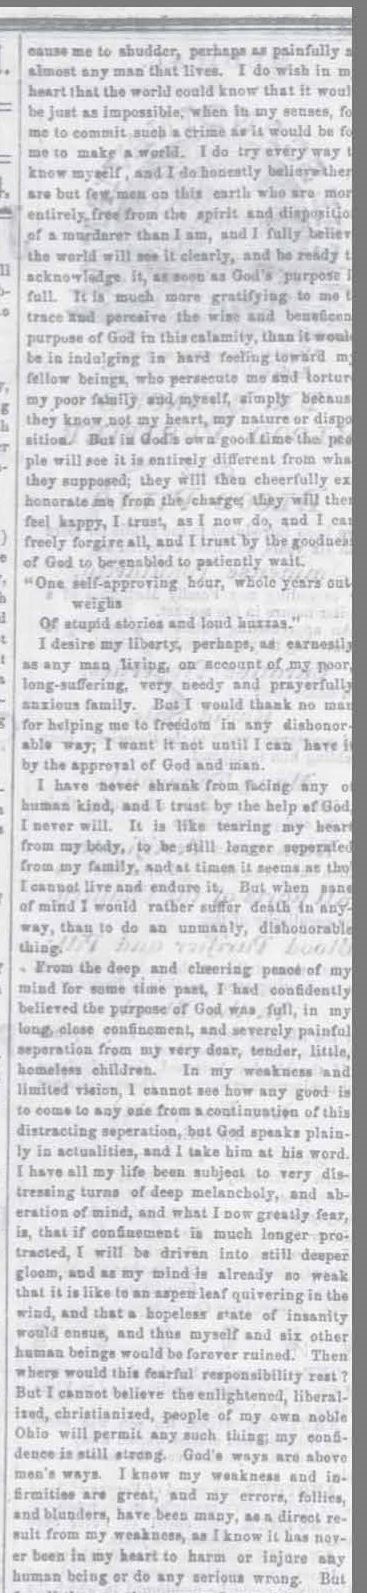 Part 2 of Article from the Xenia Sentinel dated November 25, 1864 (JPG)